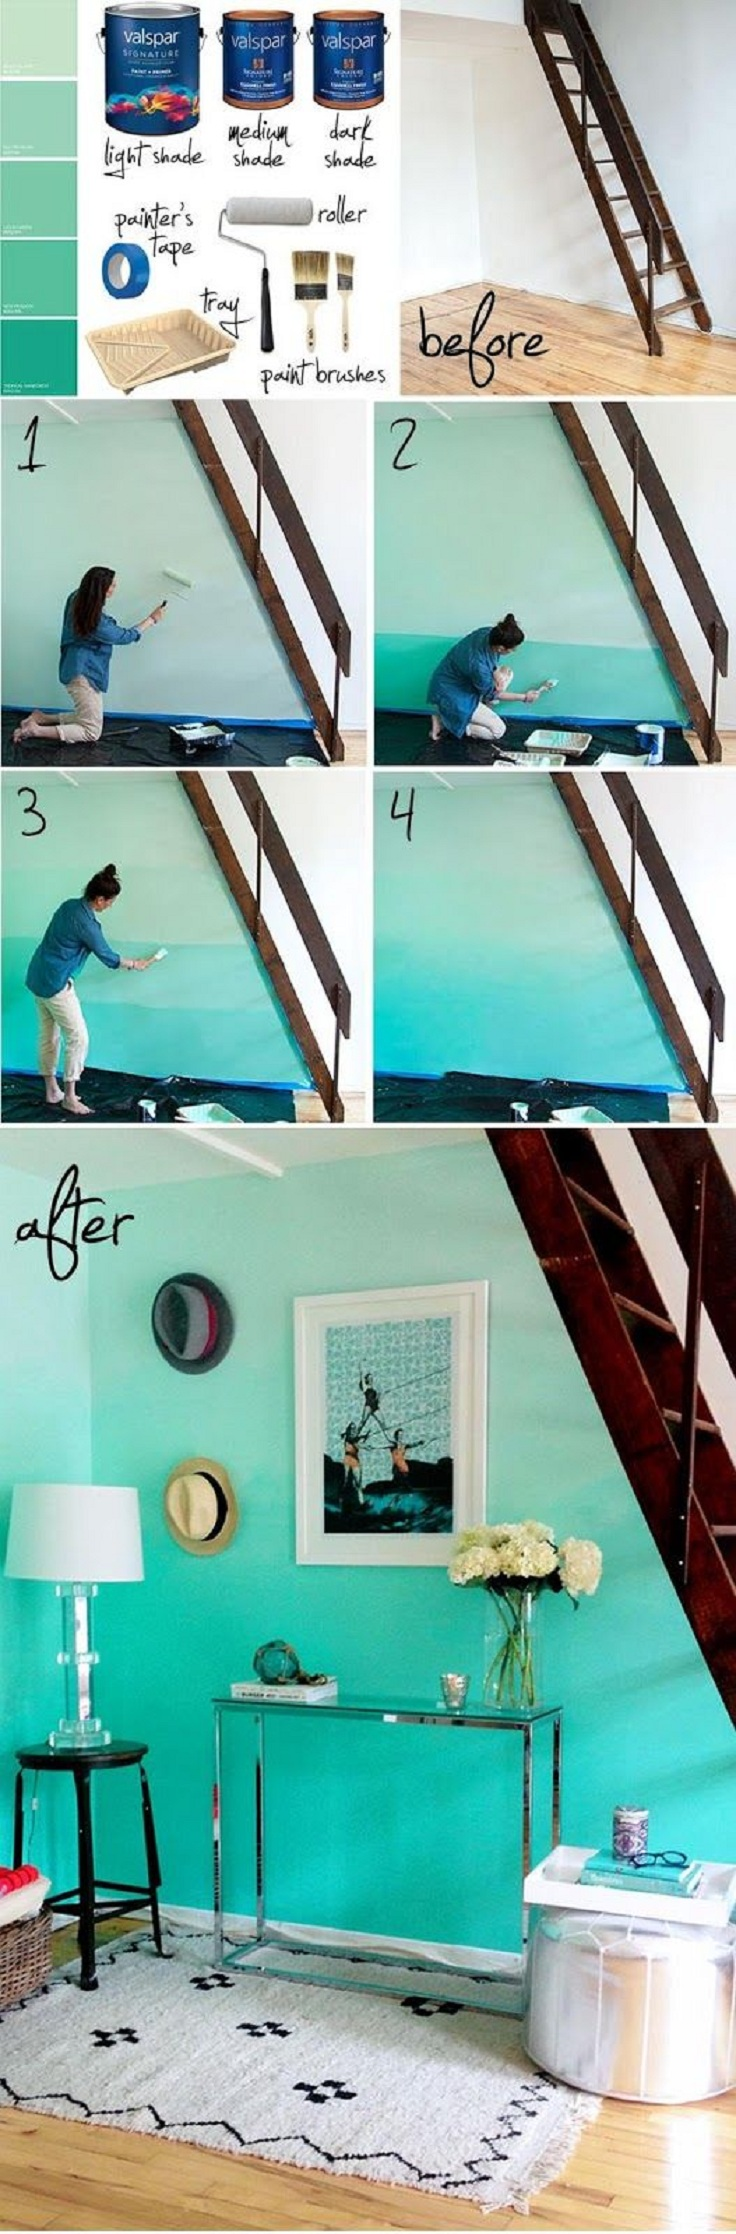 10 Simply Breathtaking DIY Home Decor Projects That Will Magically Beautify Your Interior homesthetics (6)